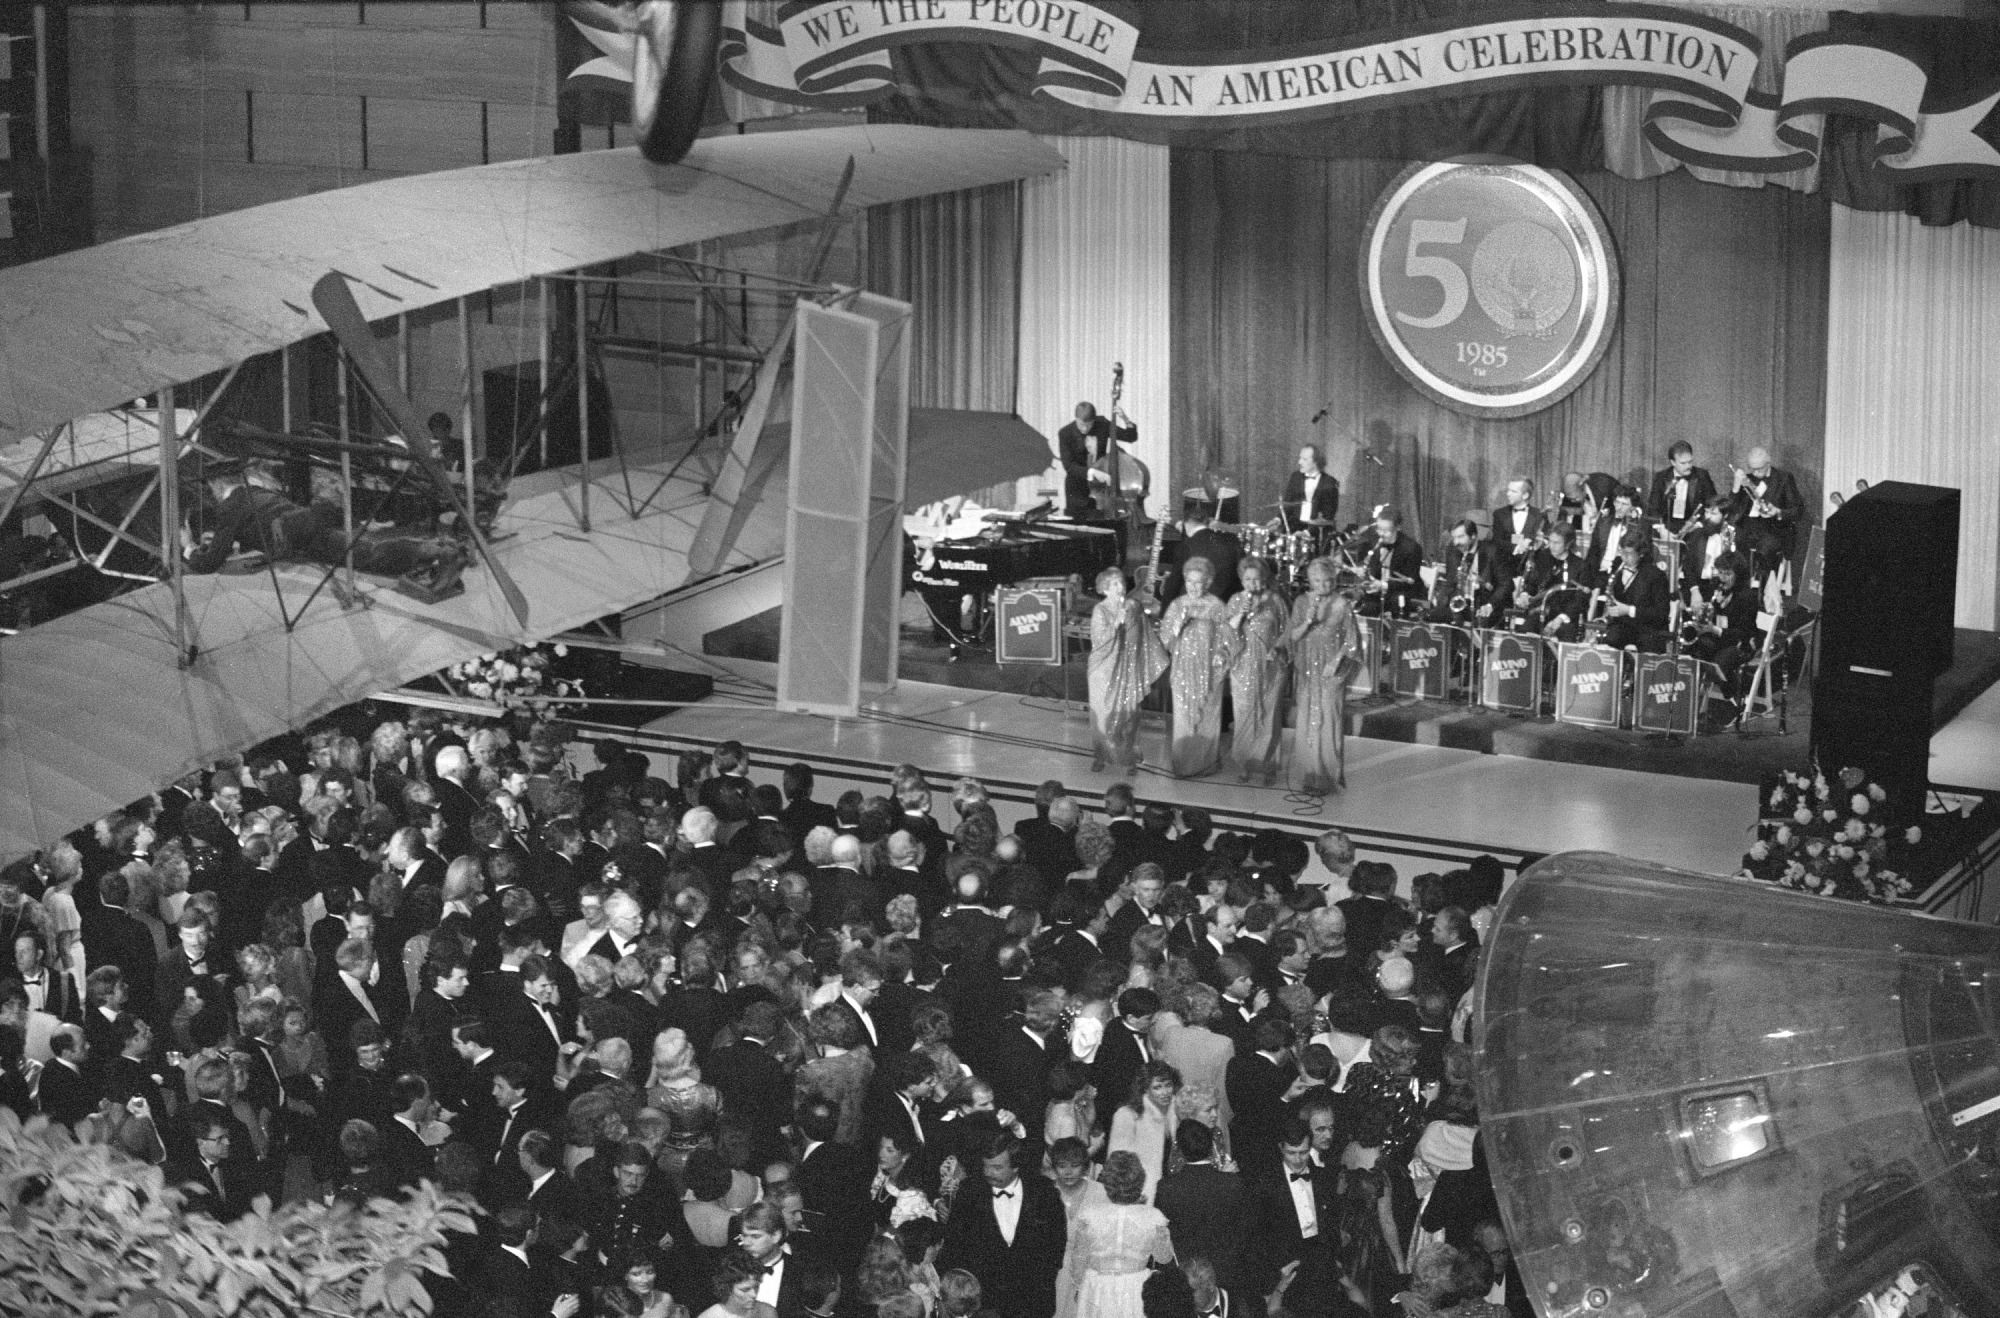 Musicians and singers performing at the 1985 Inaugural Ball for President Reagan in the National Air and Space Museum, January 21, 1985